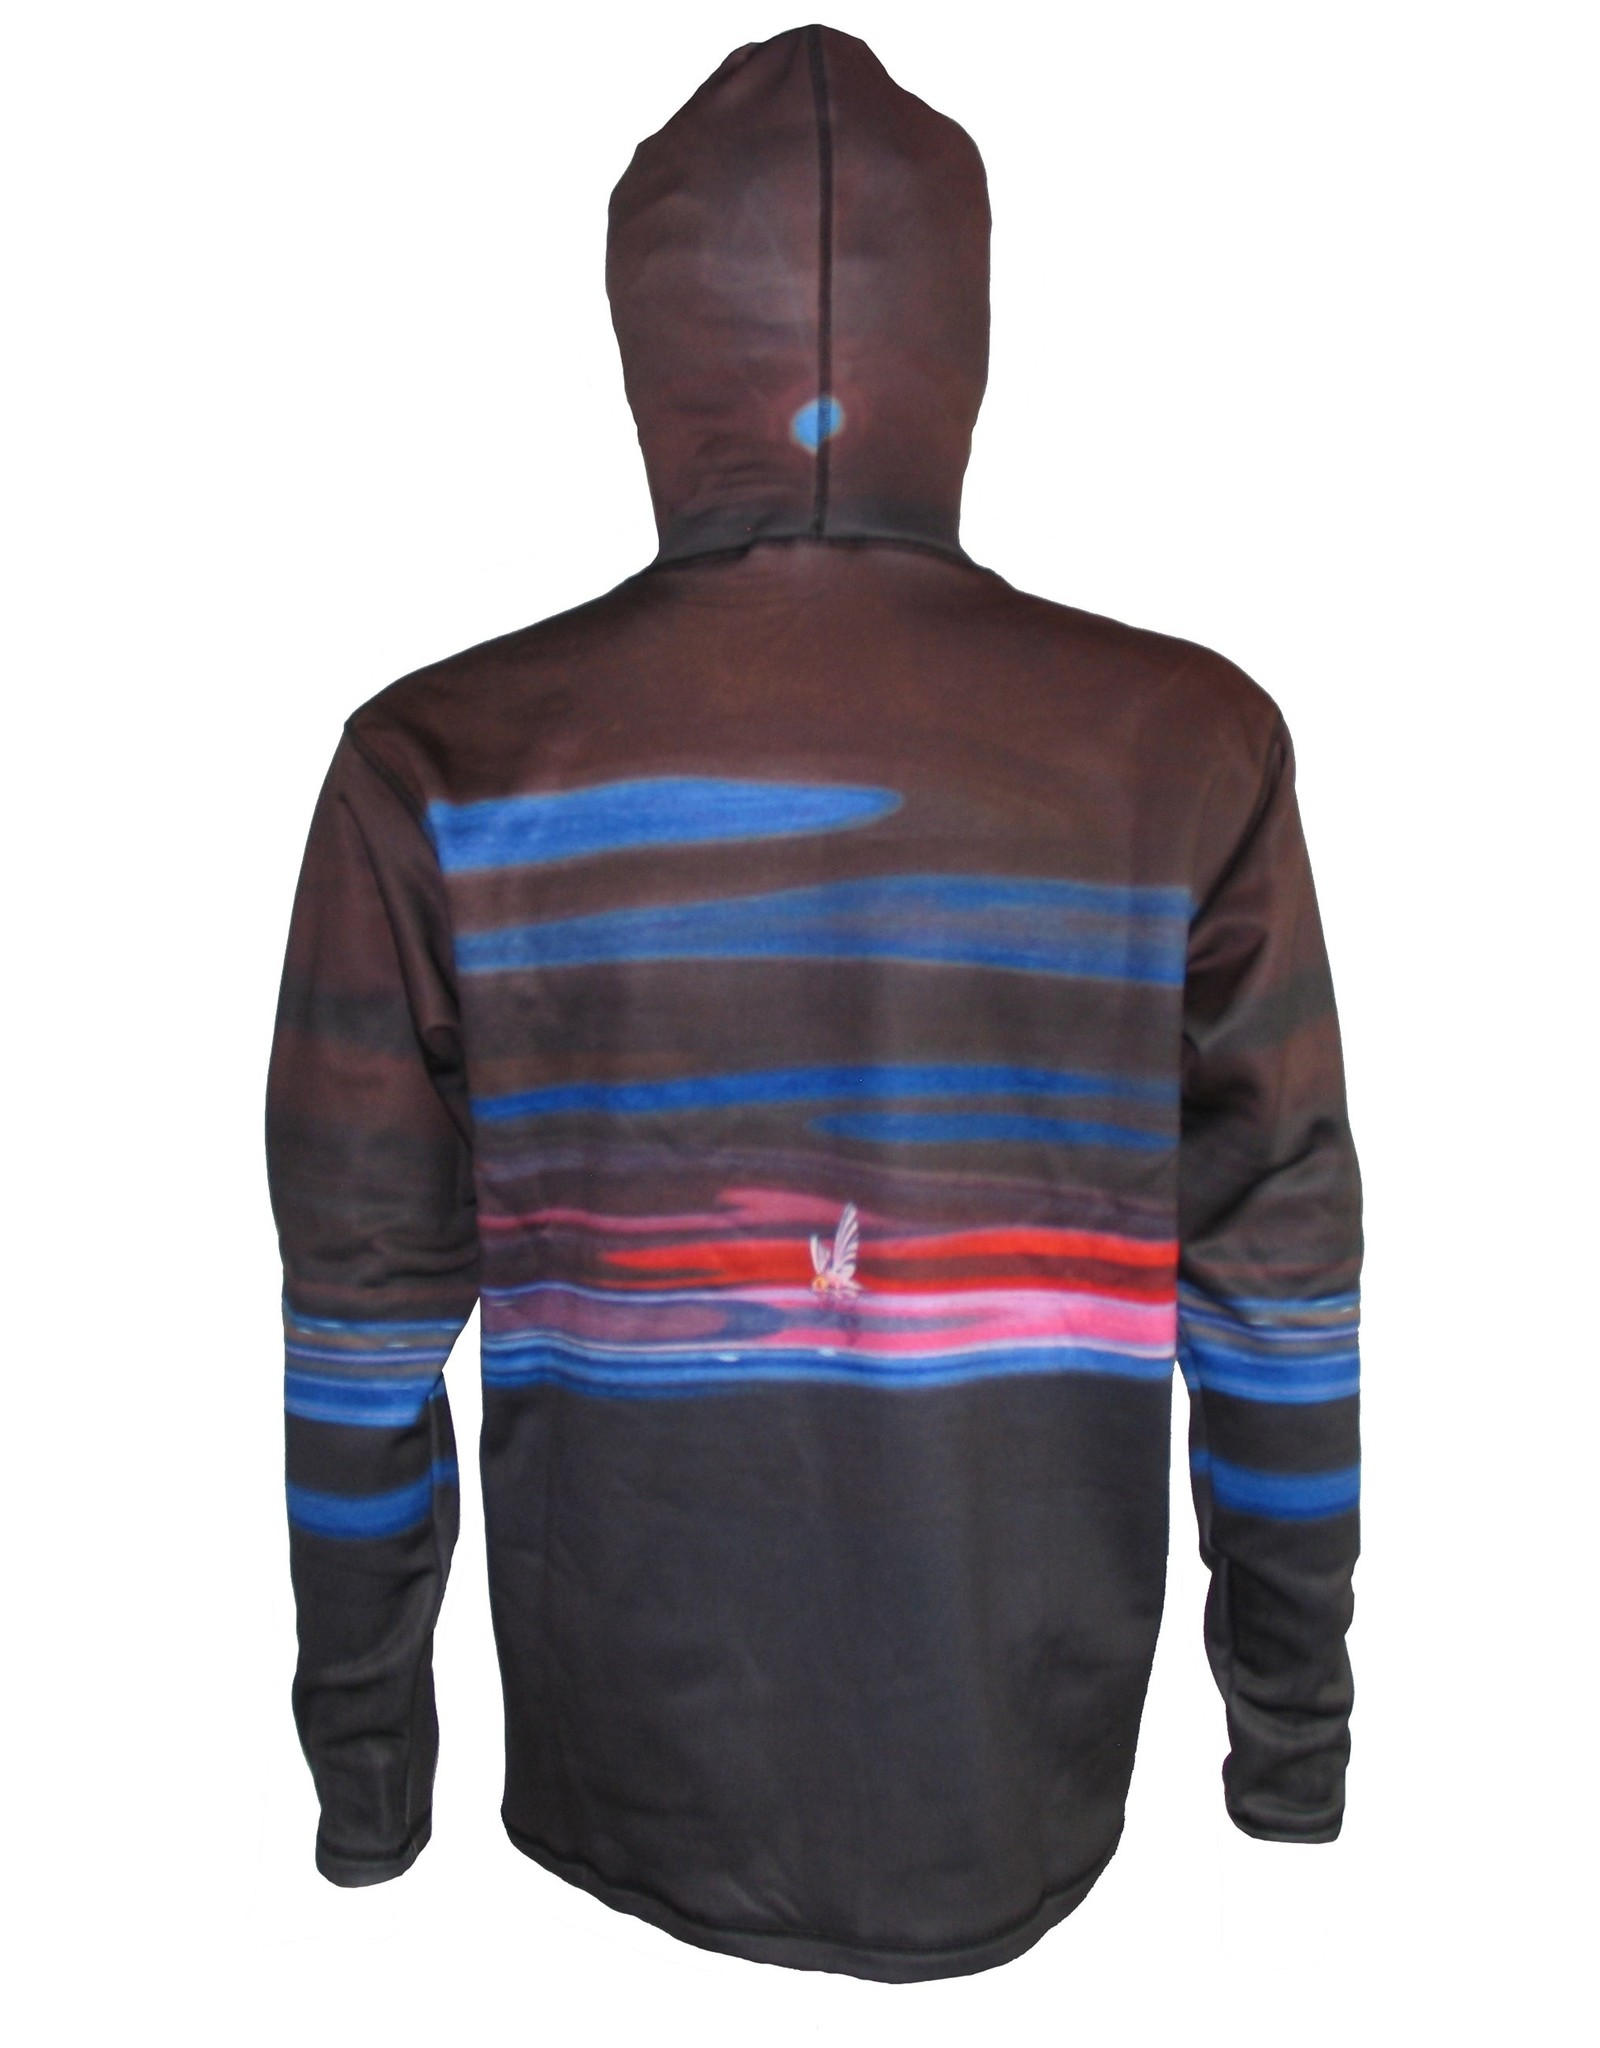 Cognito Fishing Apparel Cognito - SunPro Hoodie - The Snack